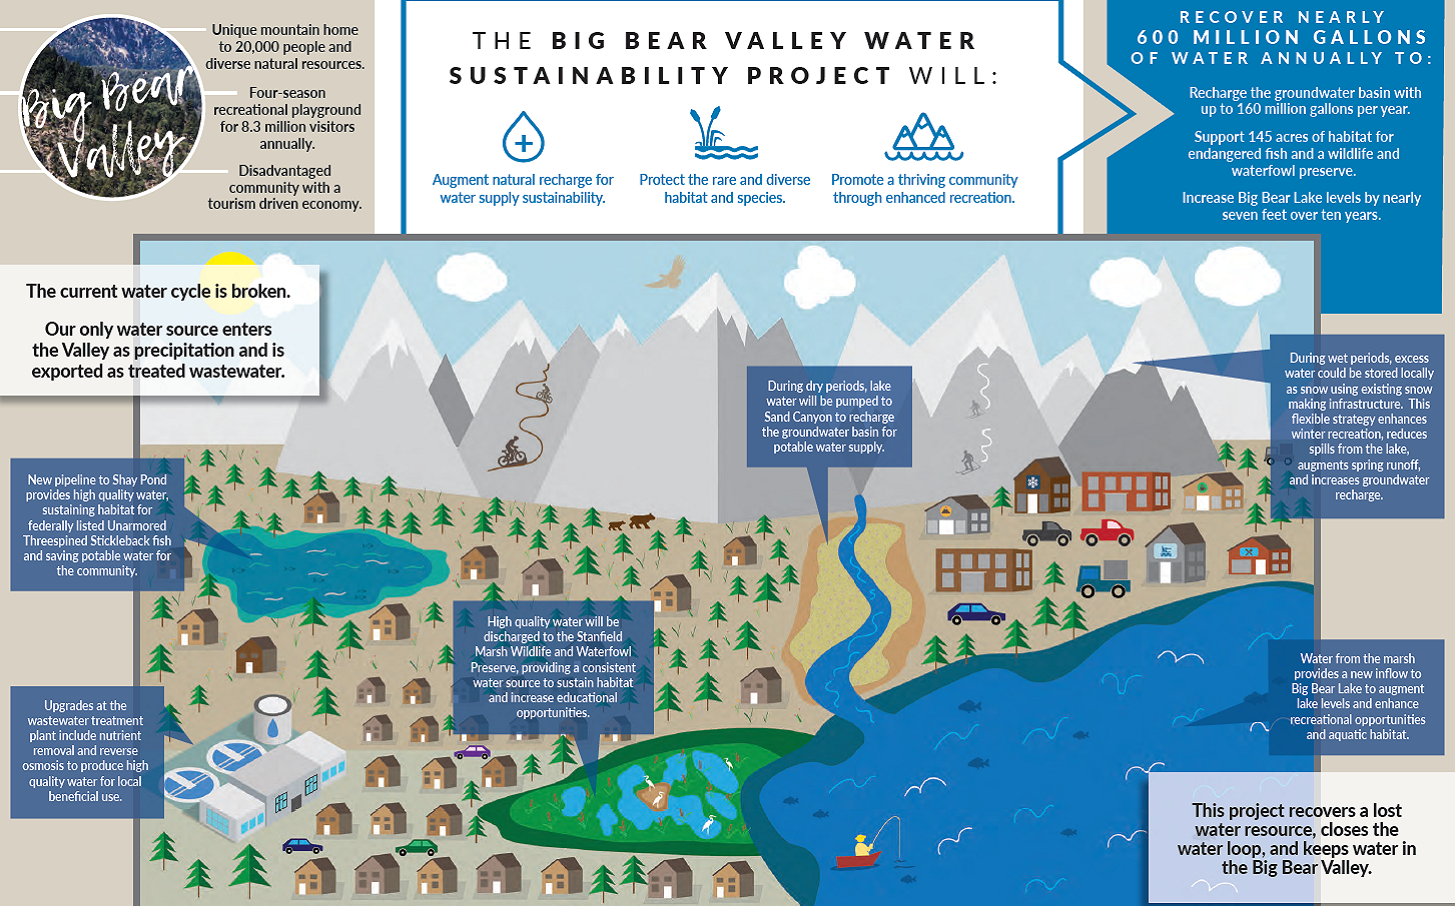 Big Bear Valley Water Sustainability Project illustration